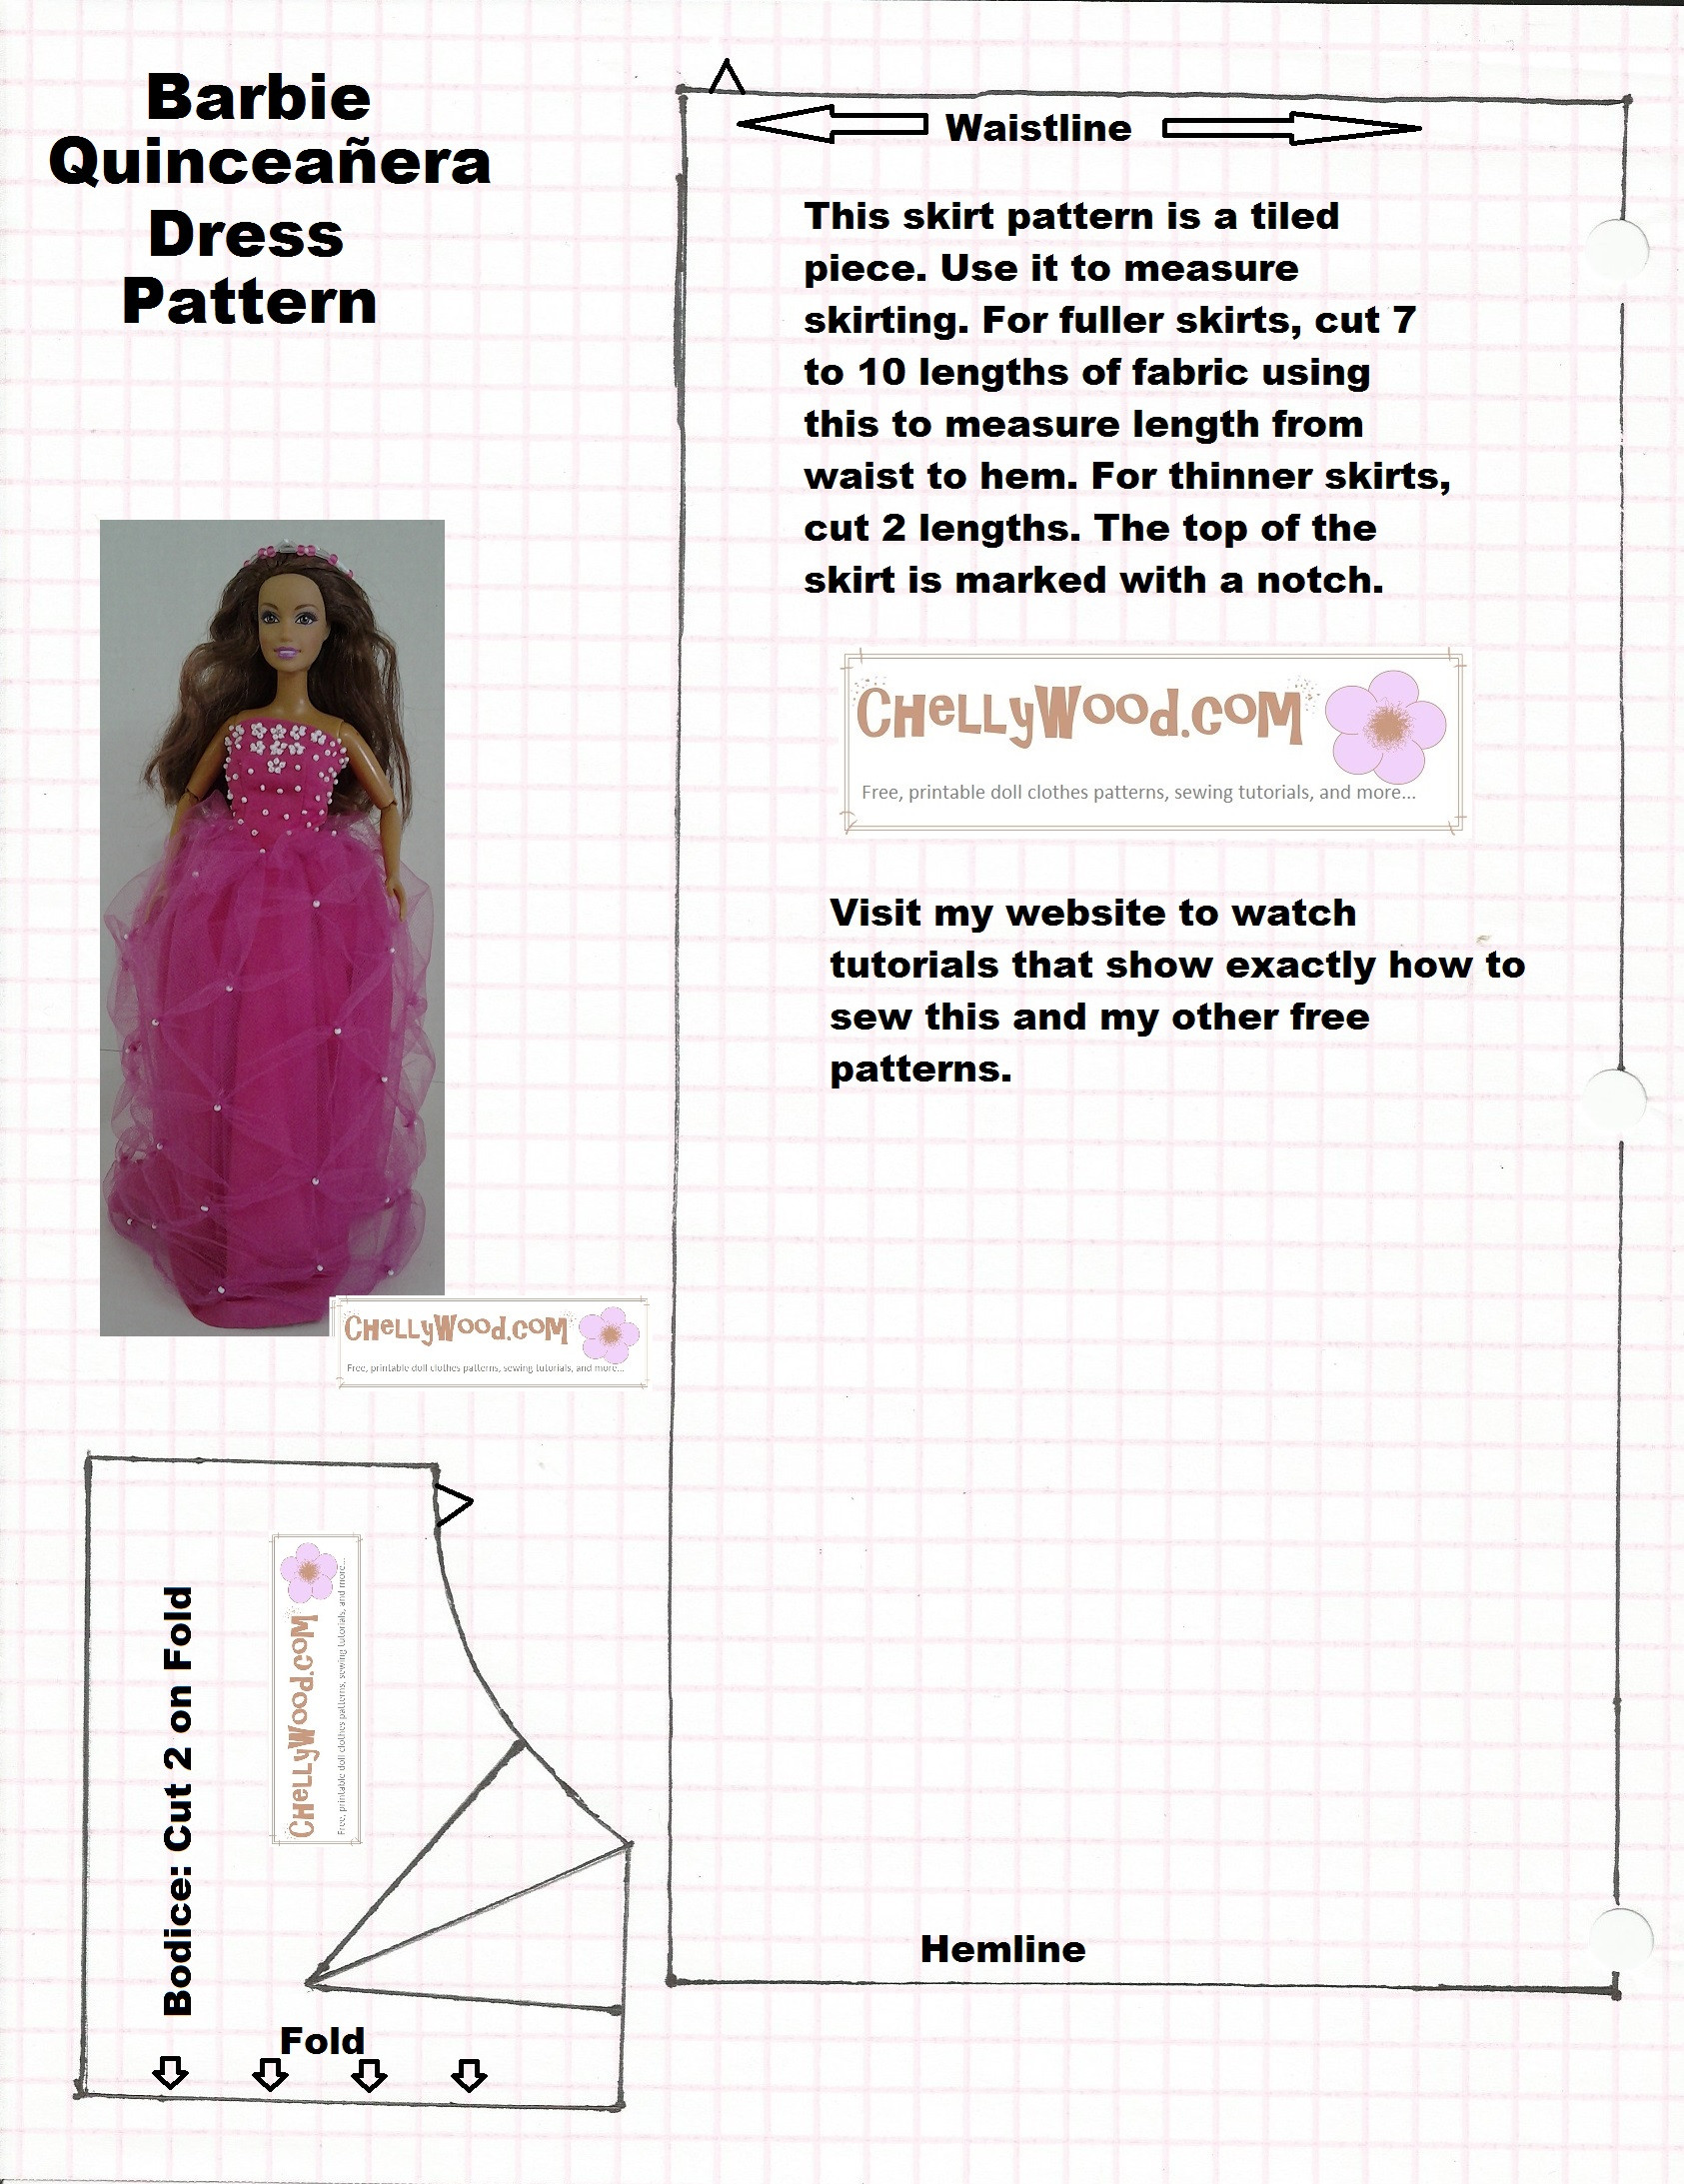 photo about Barbie Doll Clothes Patterns Free Printable named Fashionable 50 Photographs Barbie Doll Dresses Designs